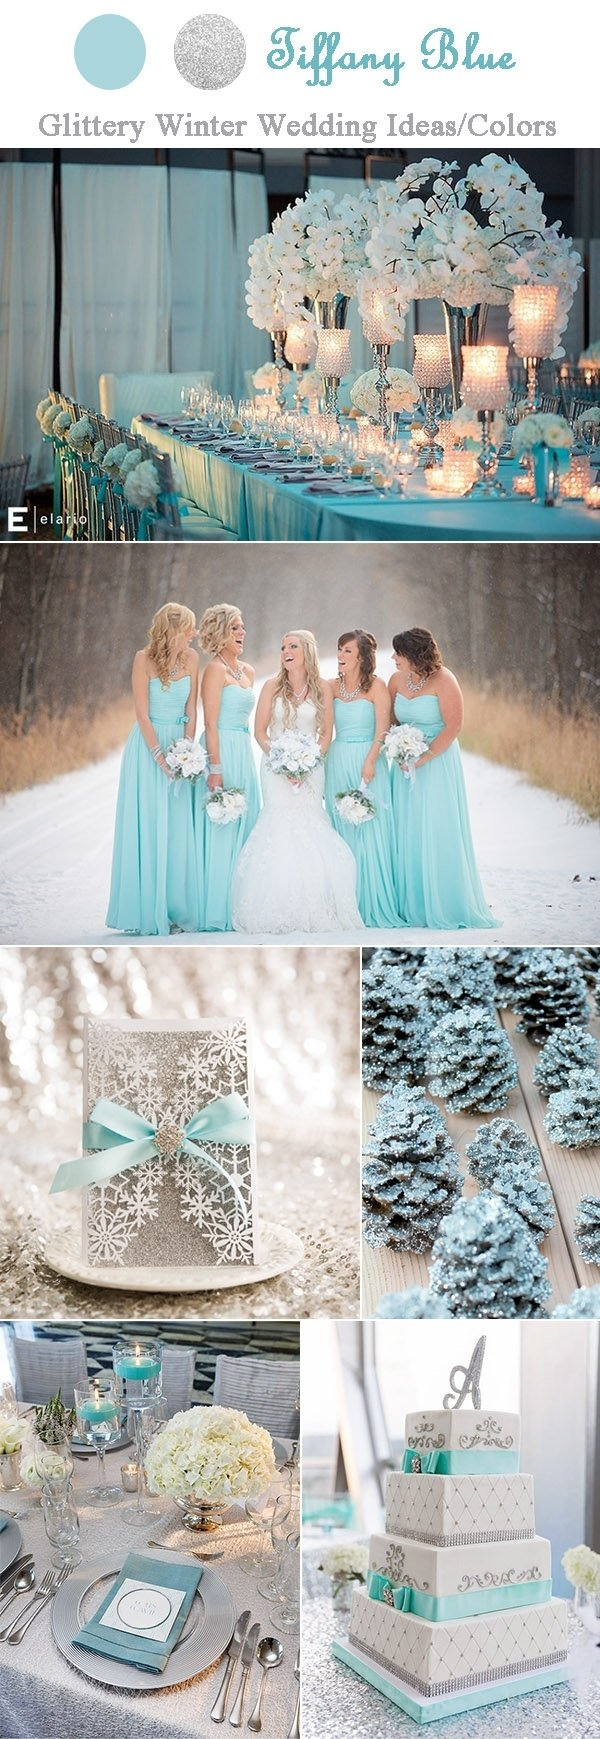 10 Attractive Tiffany Blue Wedding Theme Ideas awesome ideas for your tiffany blue themed wedding 2020